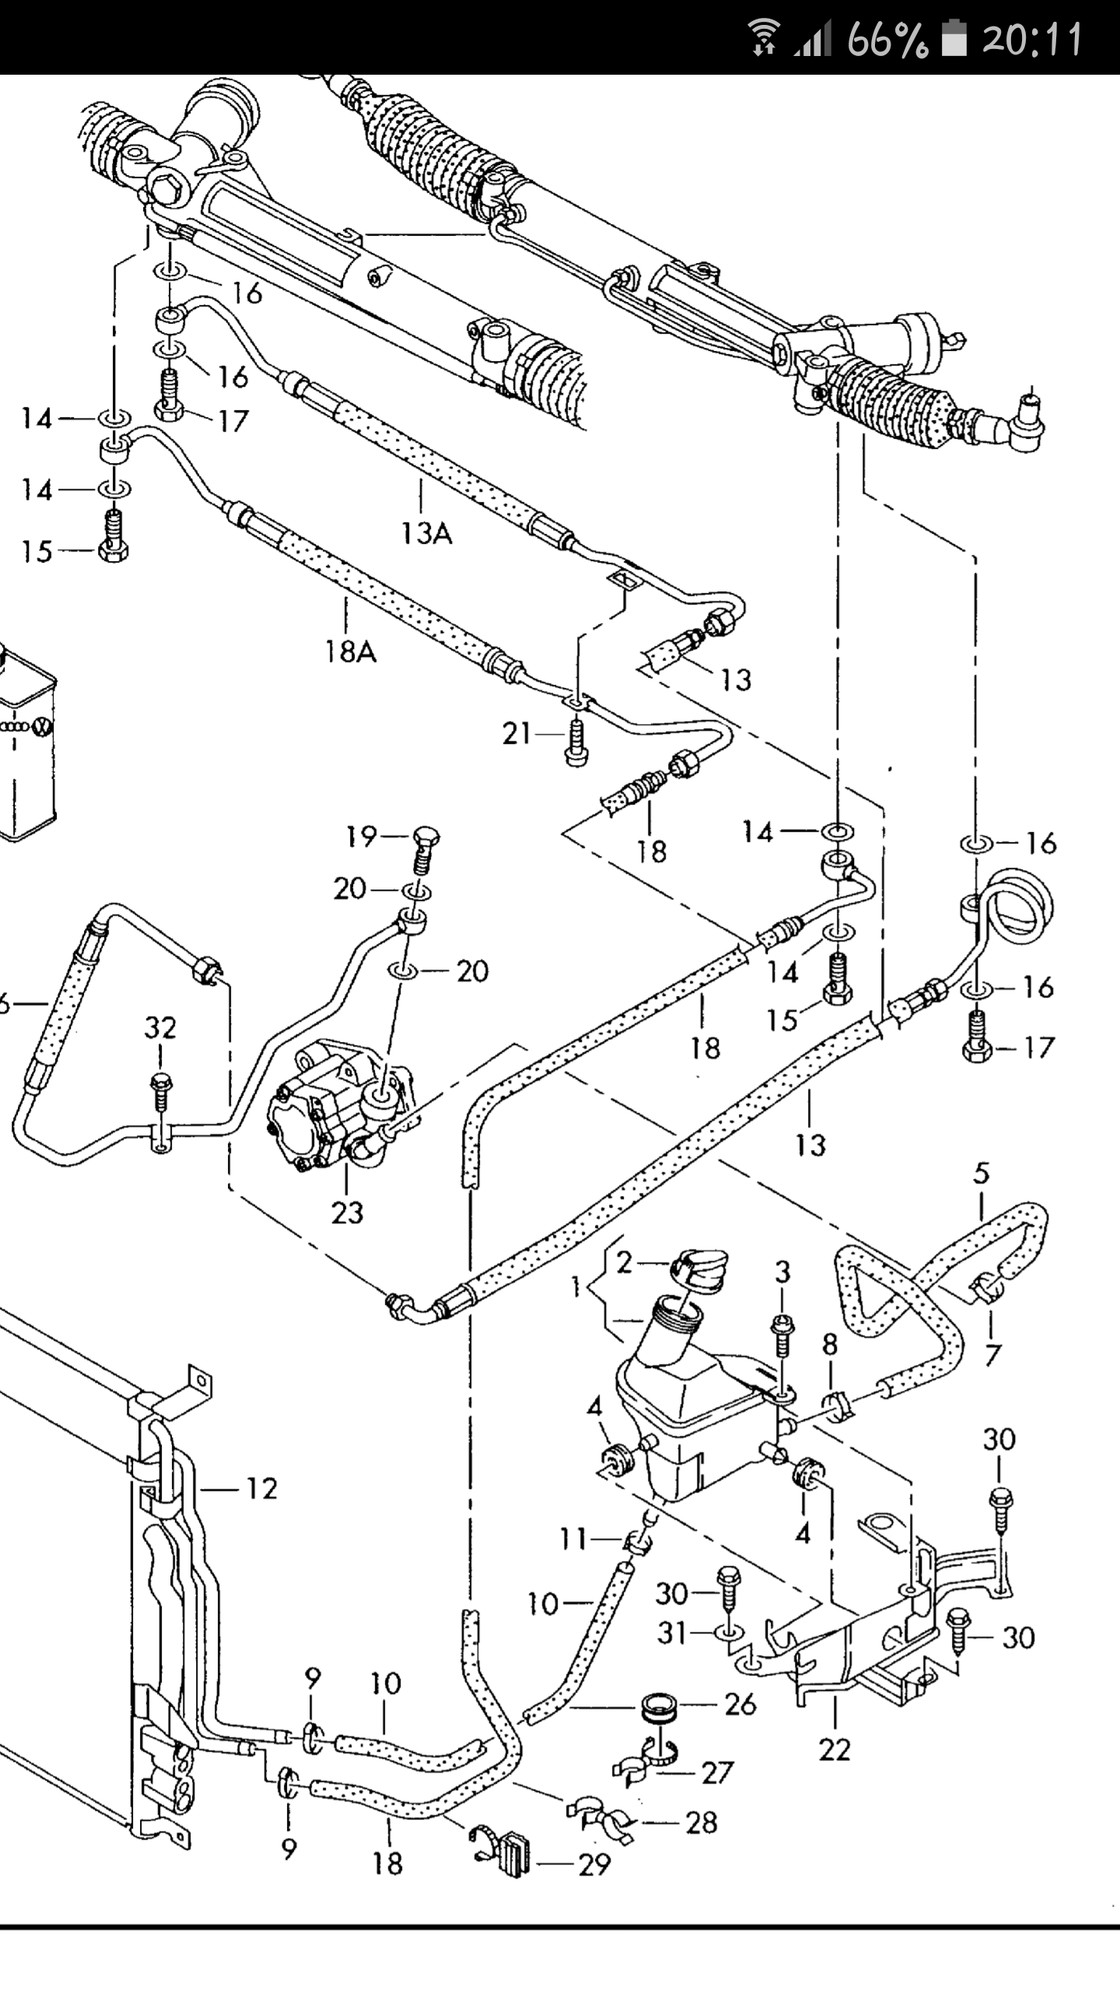 Power Steering assembly Diagram Replacing Power Steering Hose Audiworld forums Of Power Steering assembly Diagram